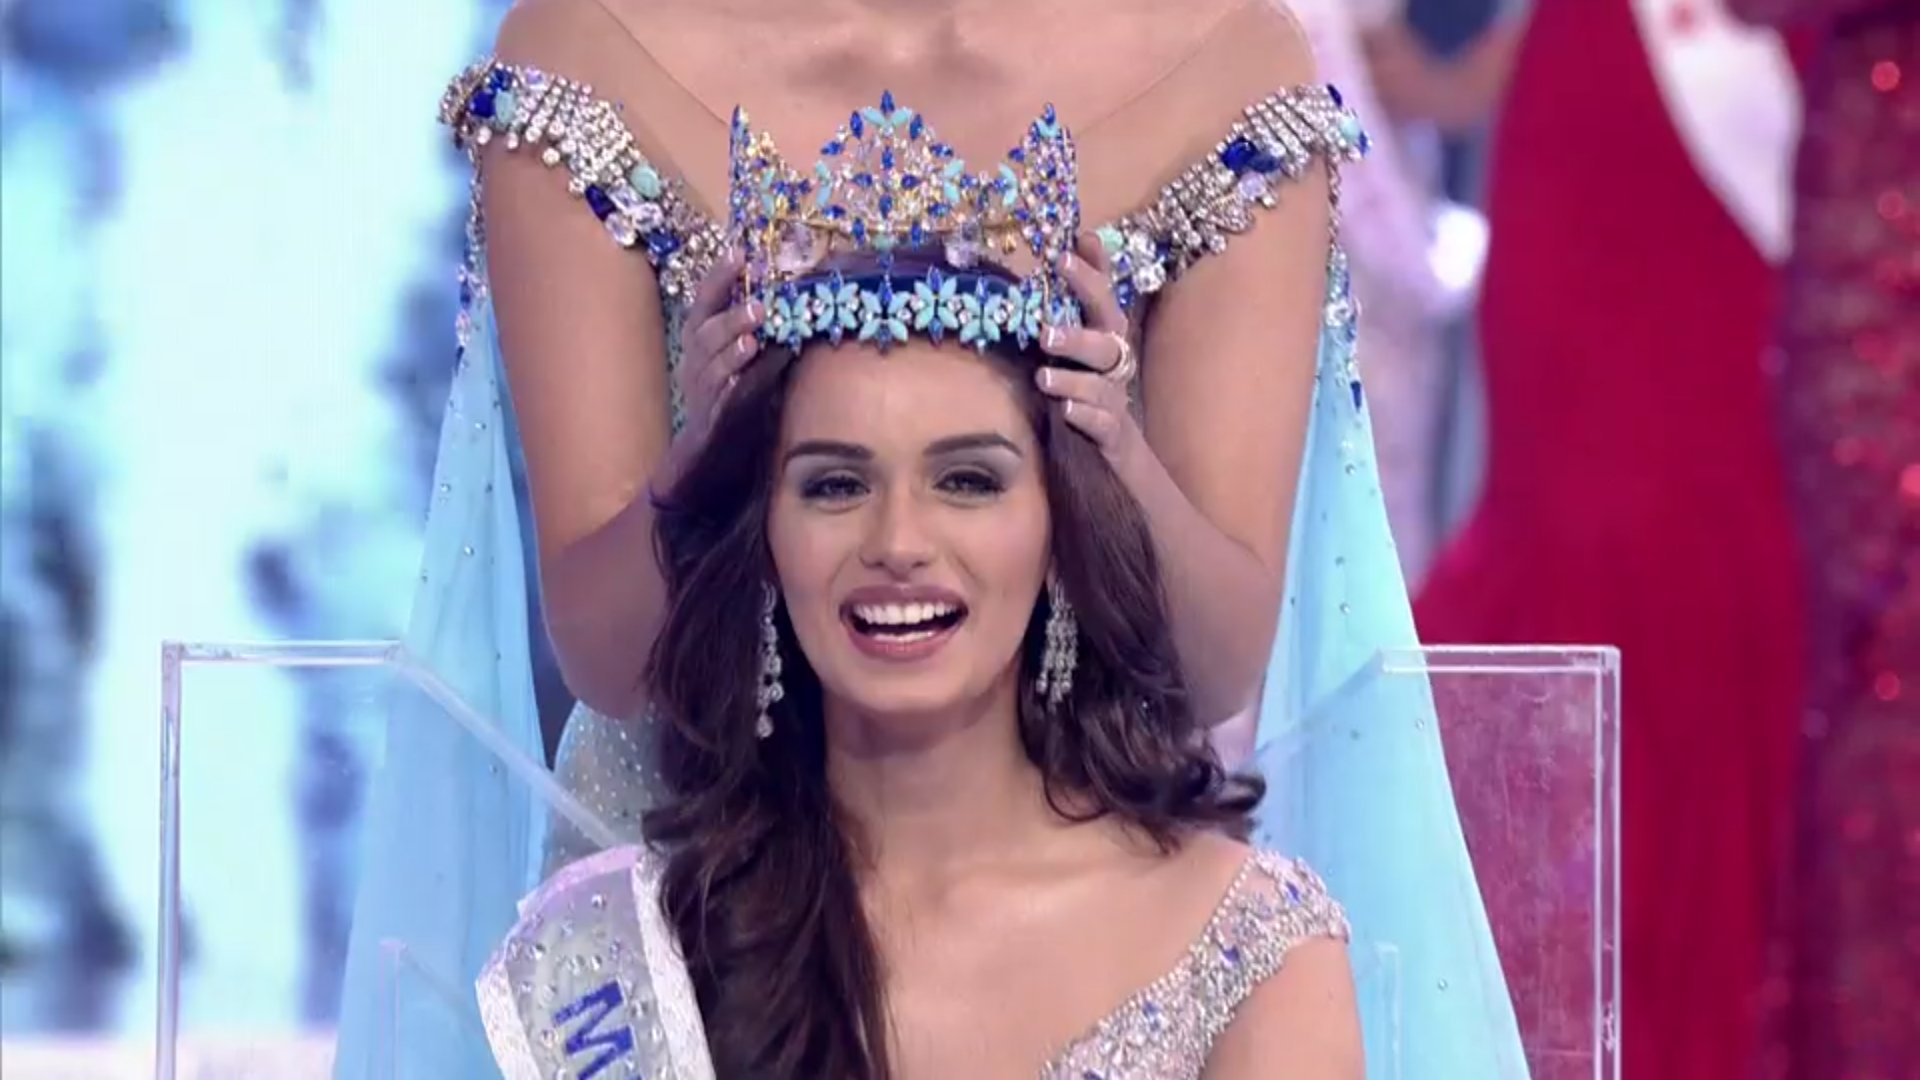 Miss world 2017: Manushi Chhillar from Haryana, India won the title after 17 years